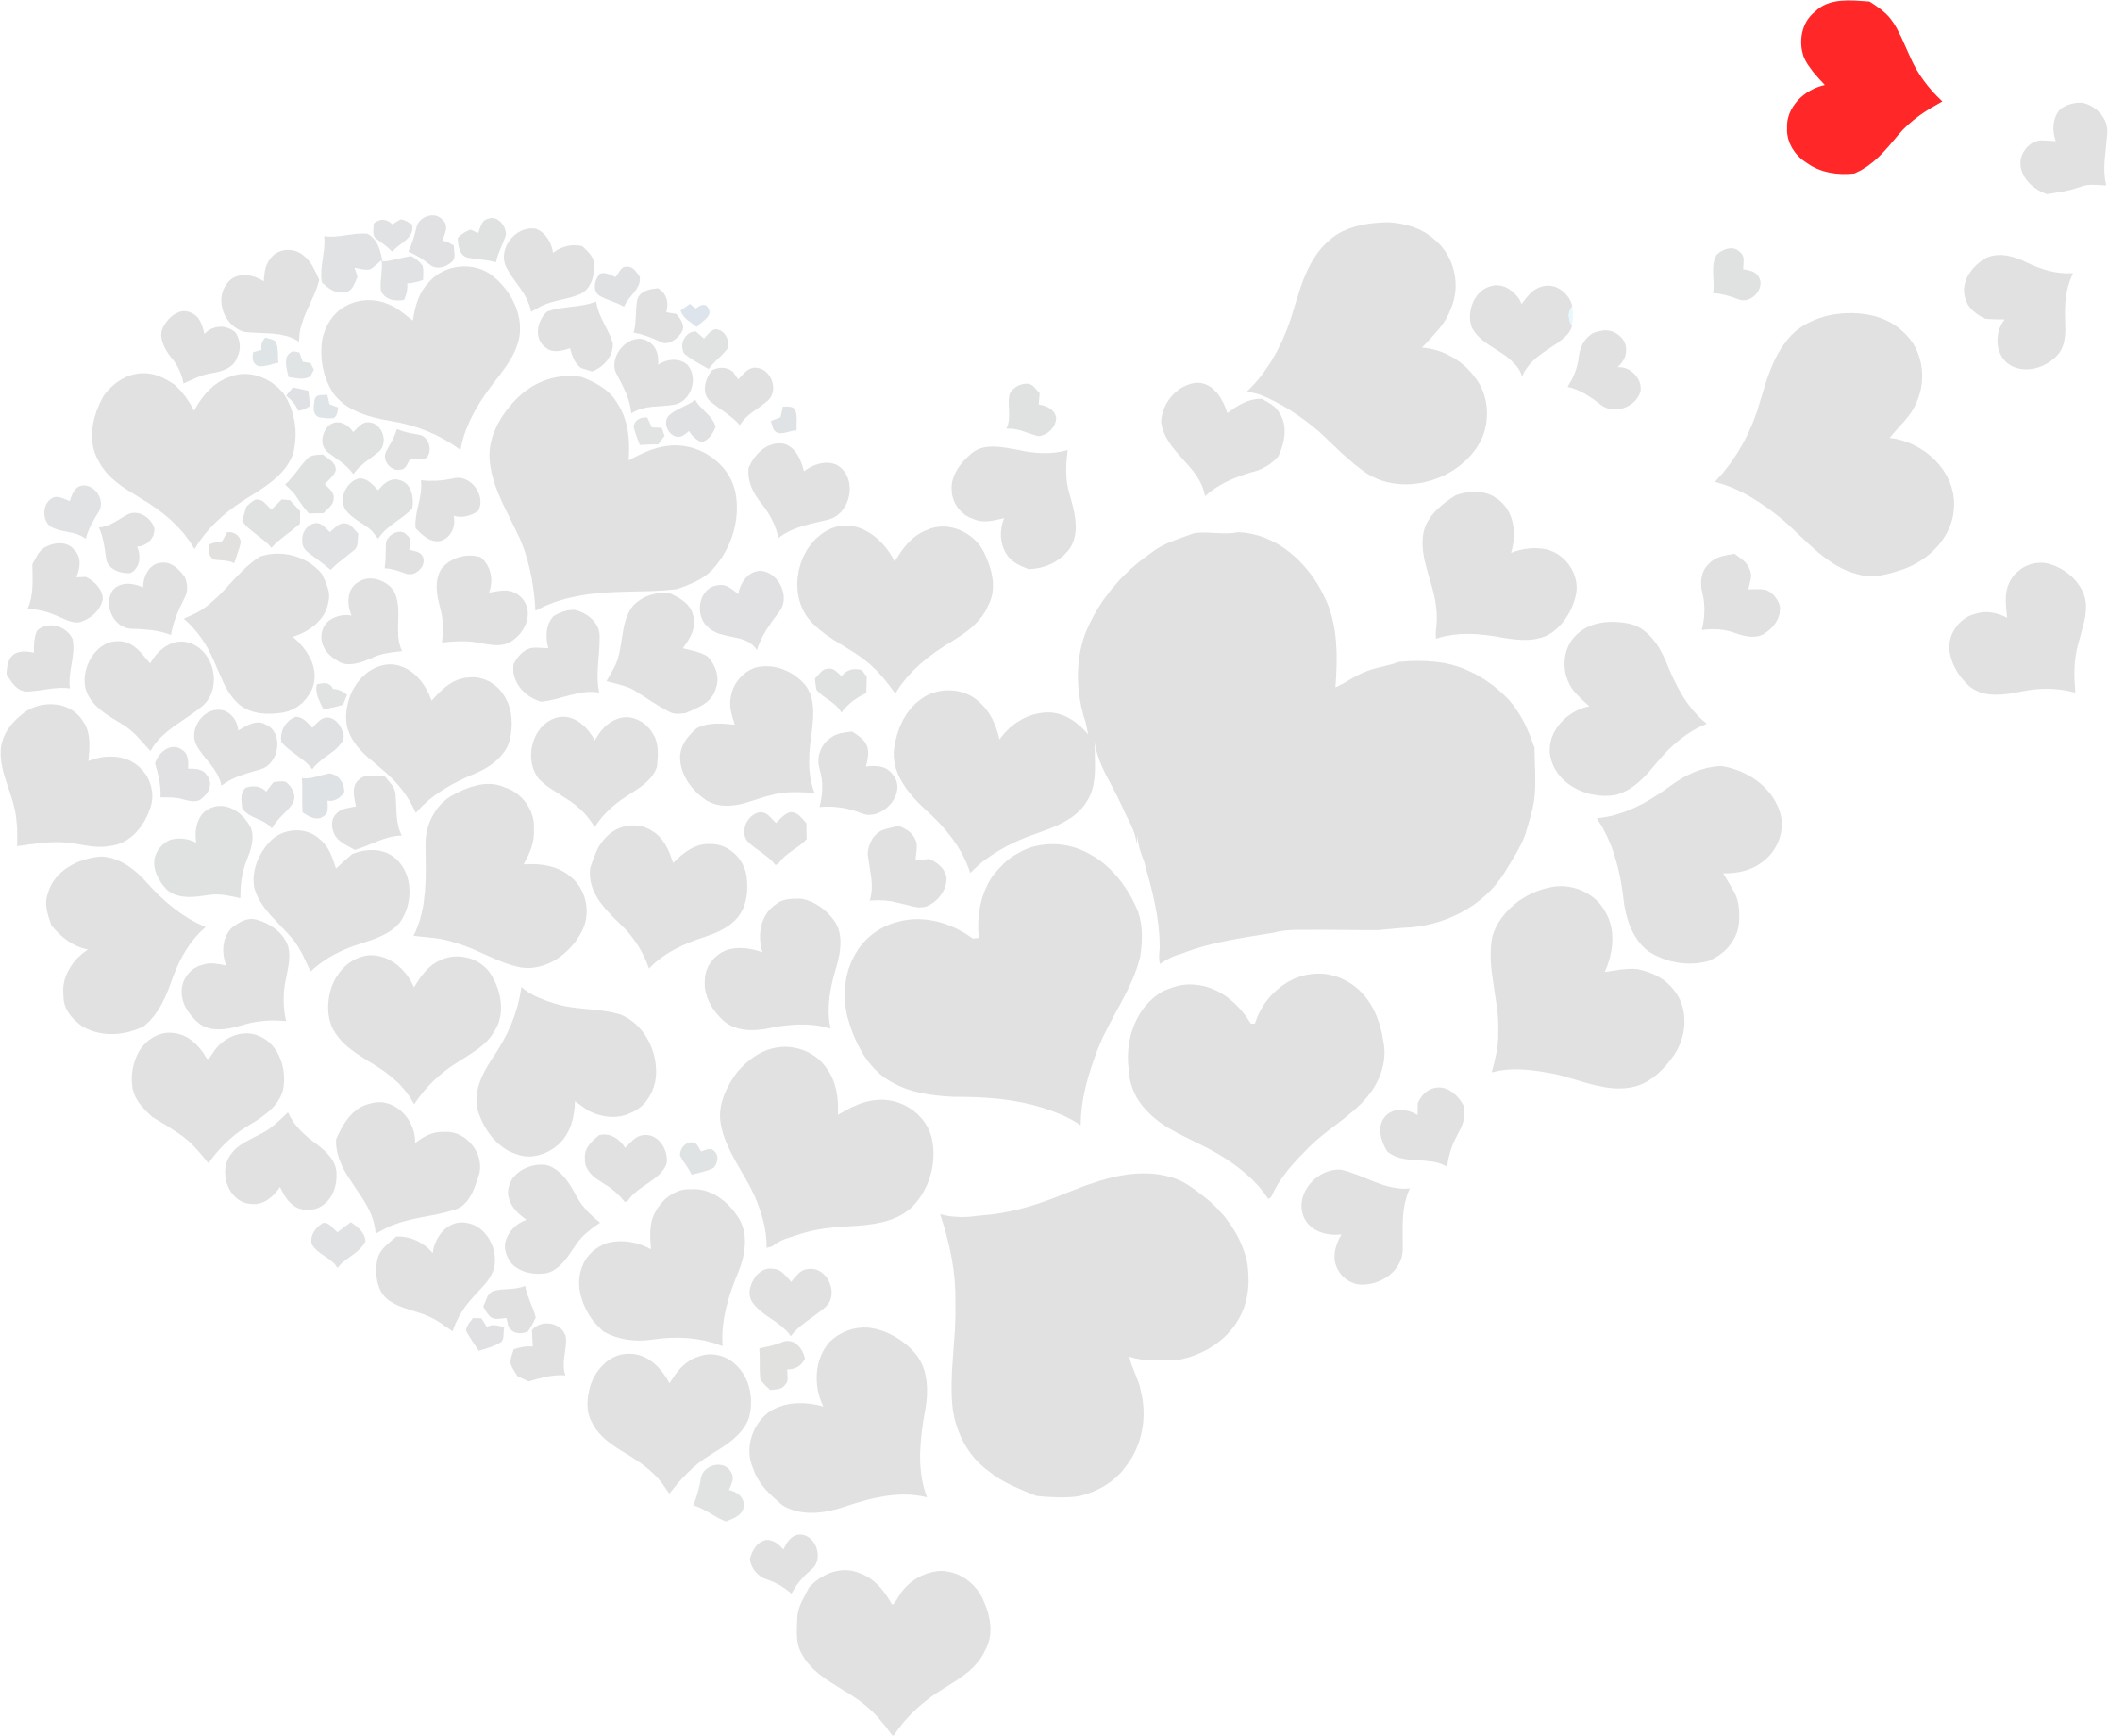 Torn no icons png. Background clipart heart